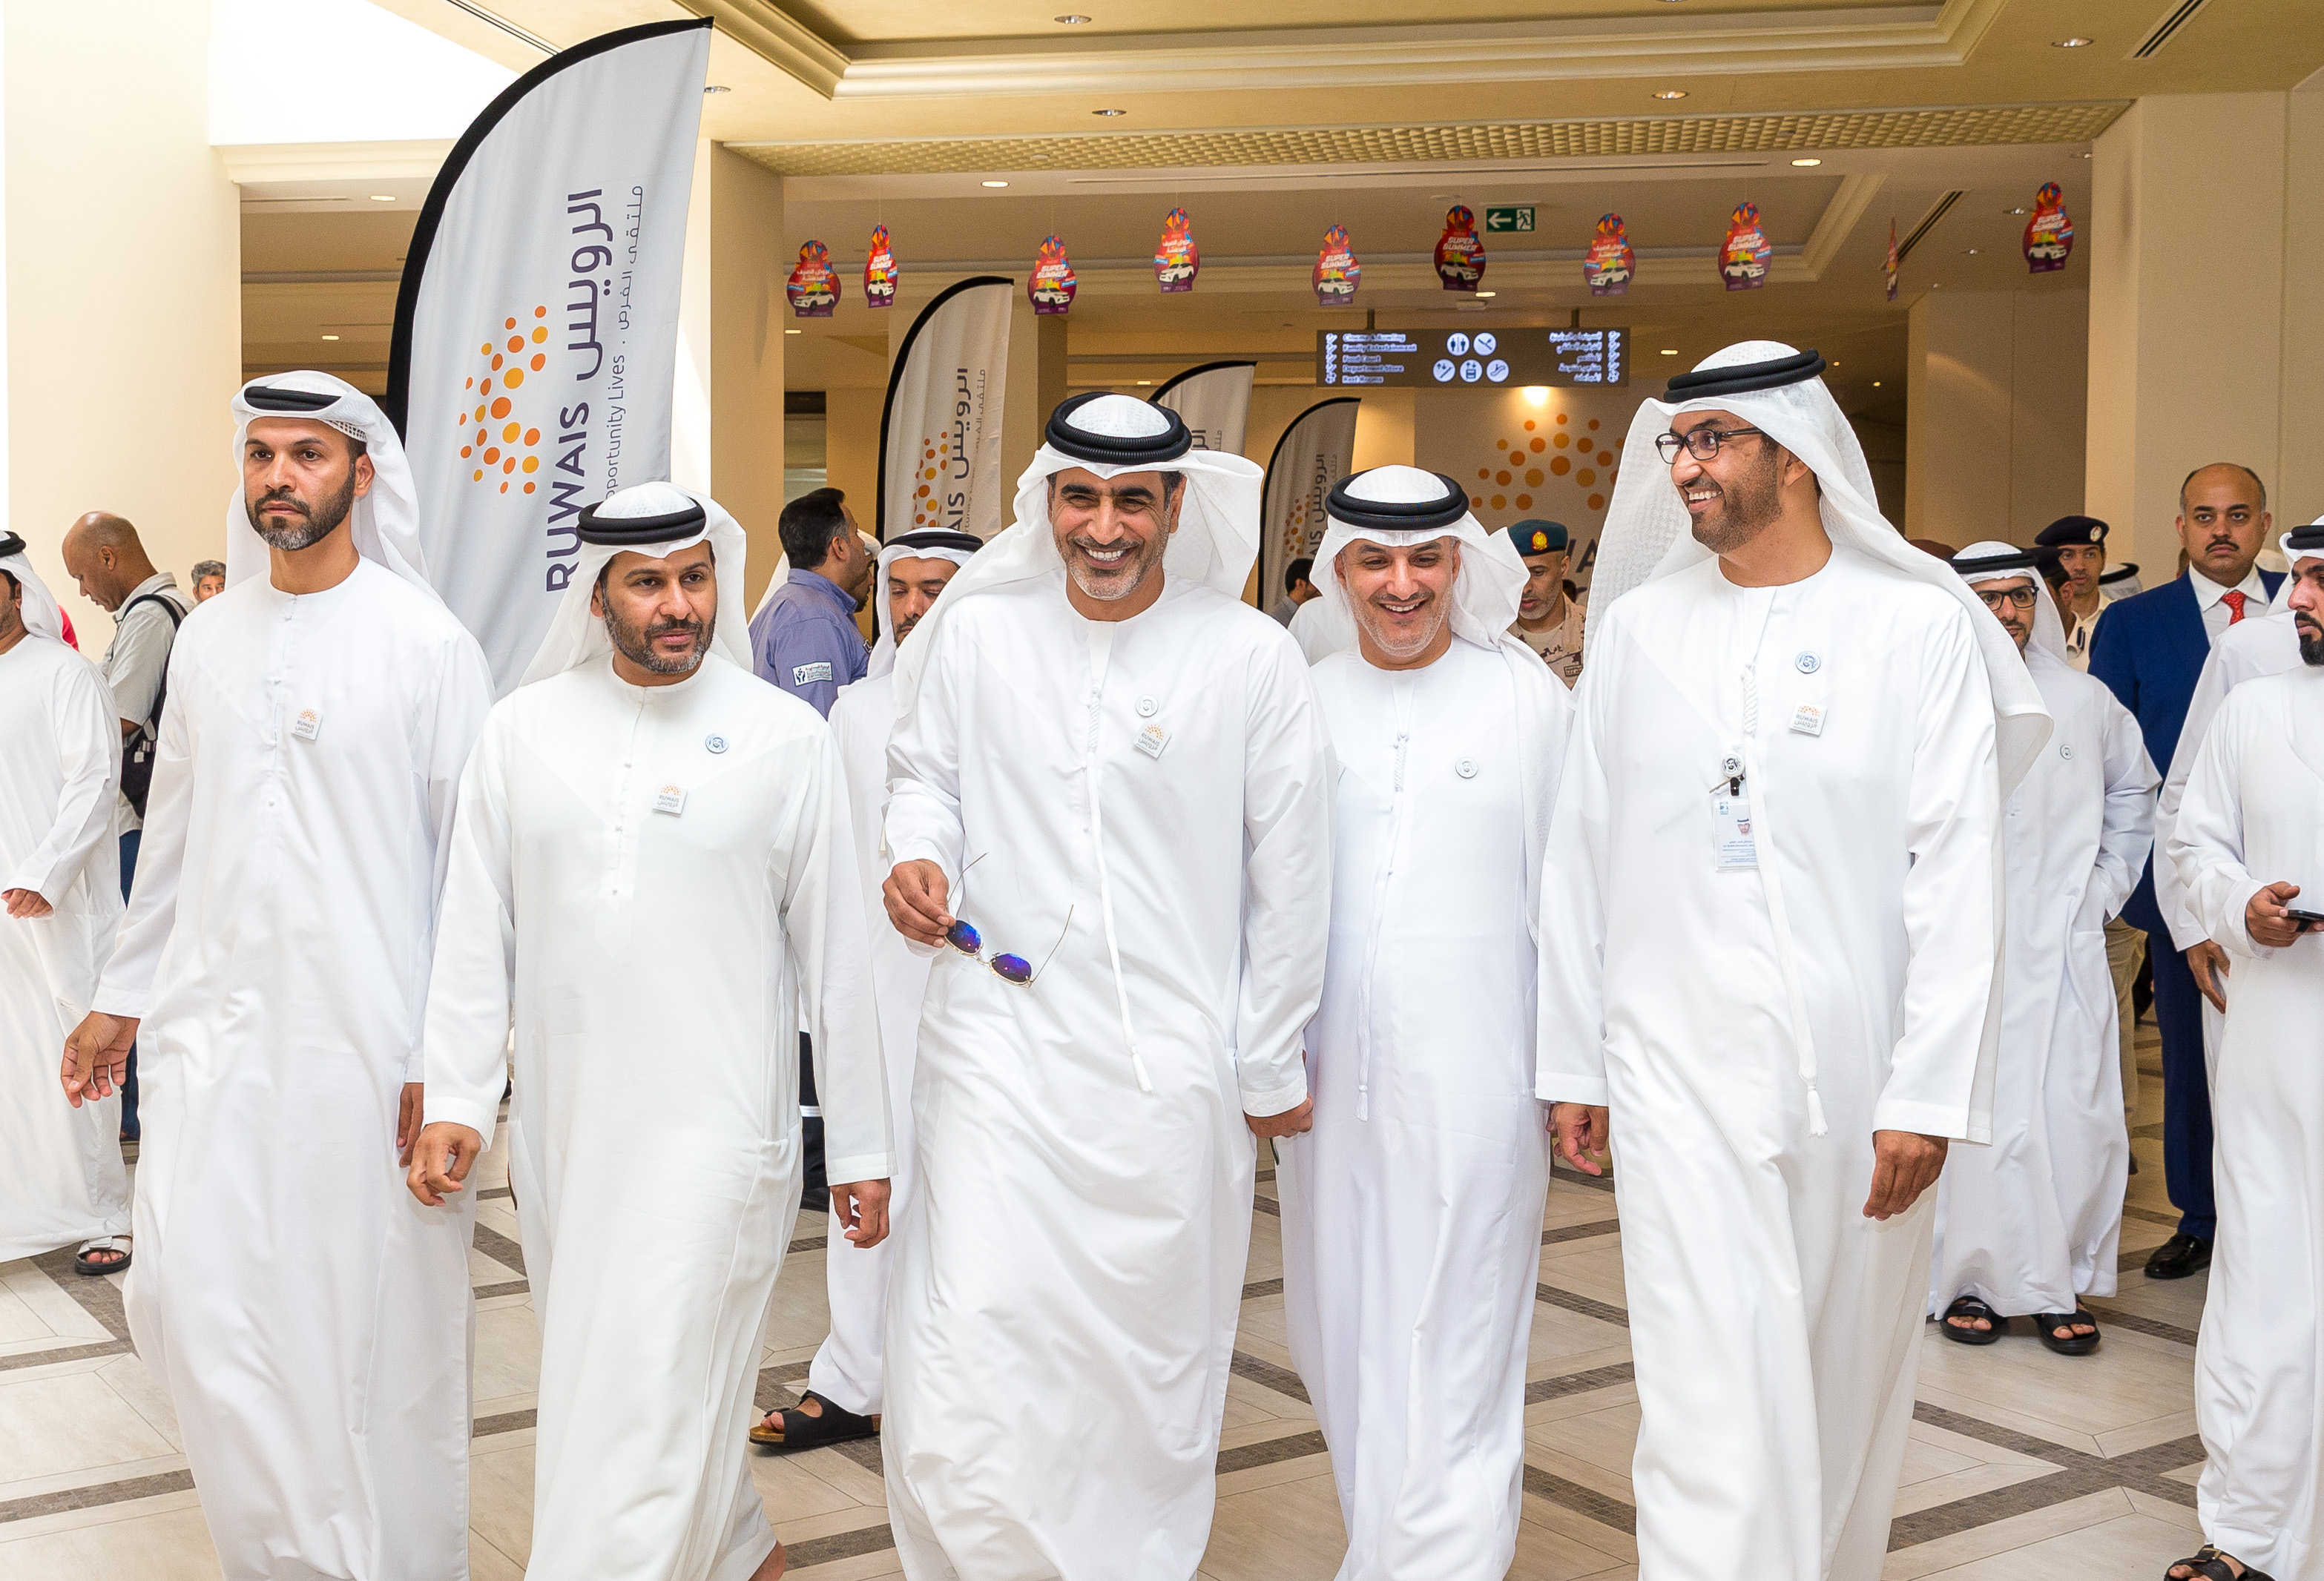 adnoc unveils plans to expand ruwais city, with focus on liveability, leisure and community 3